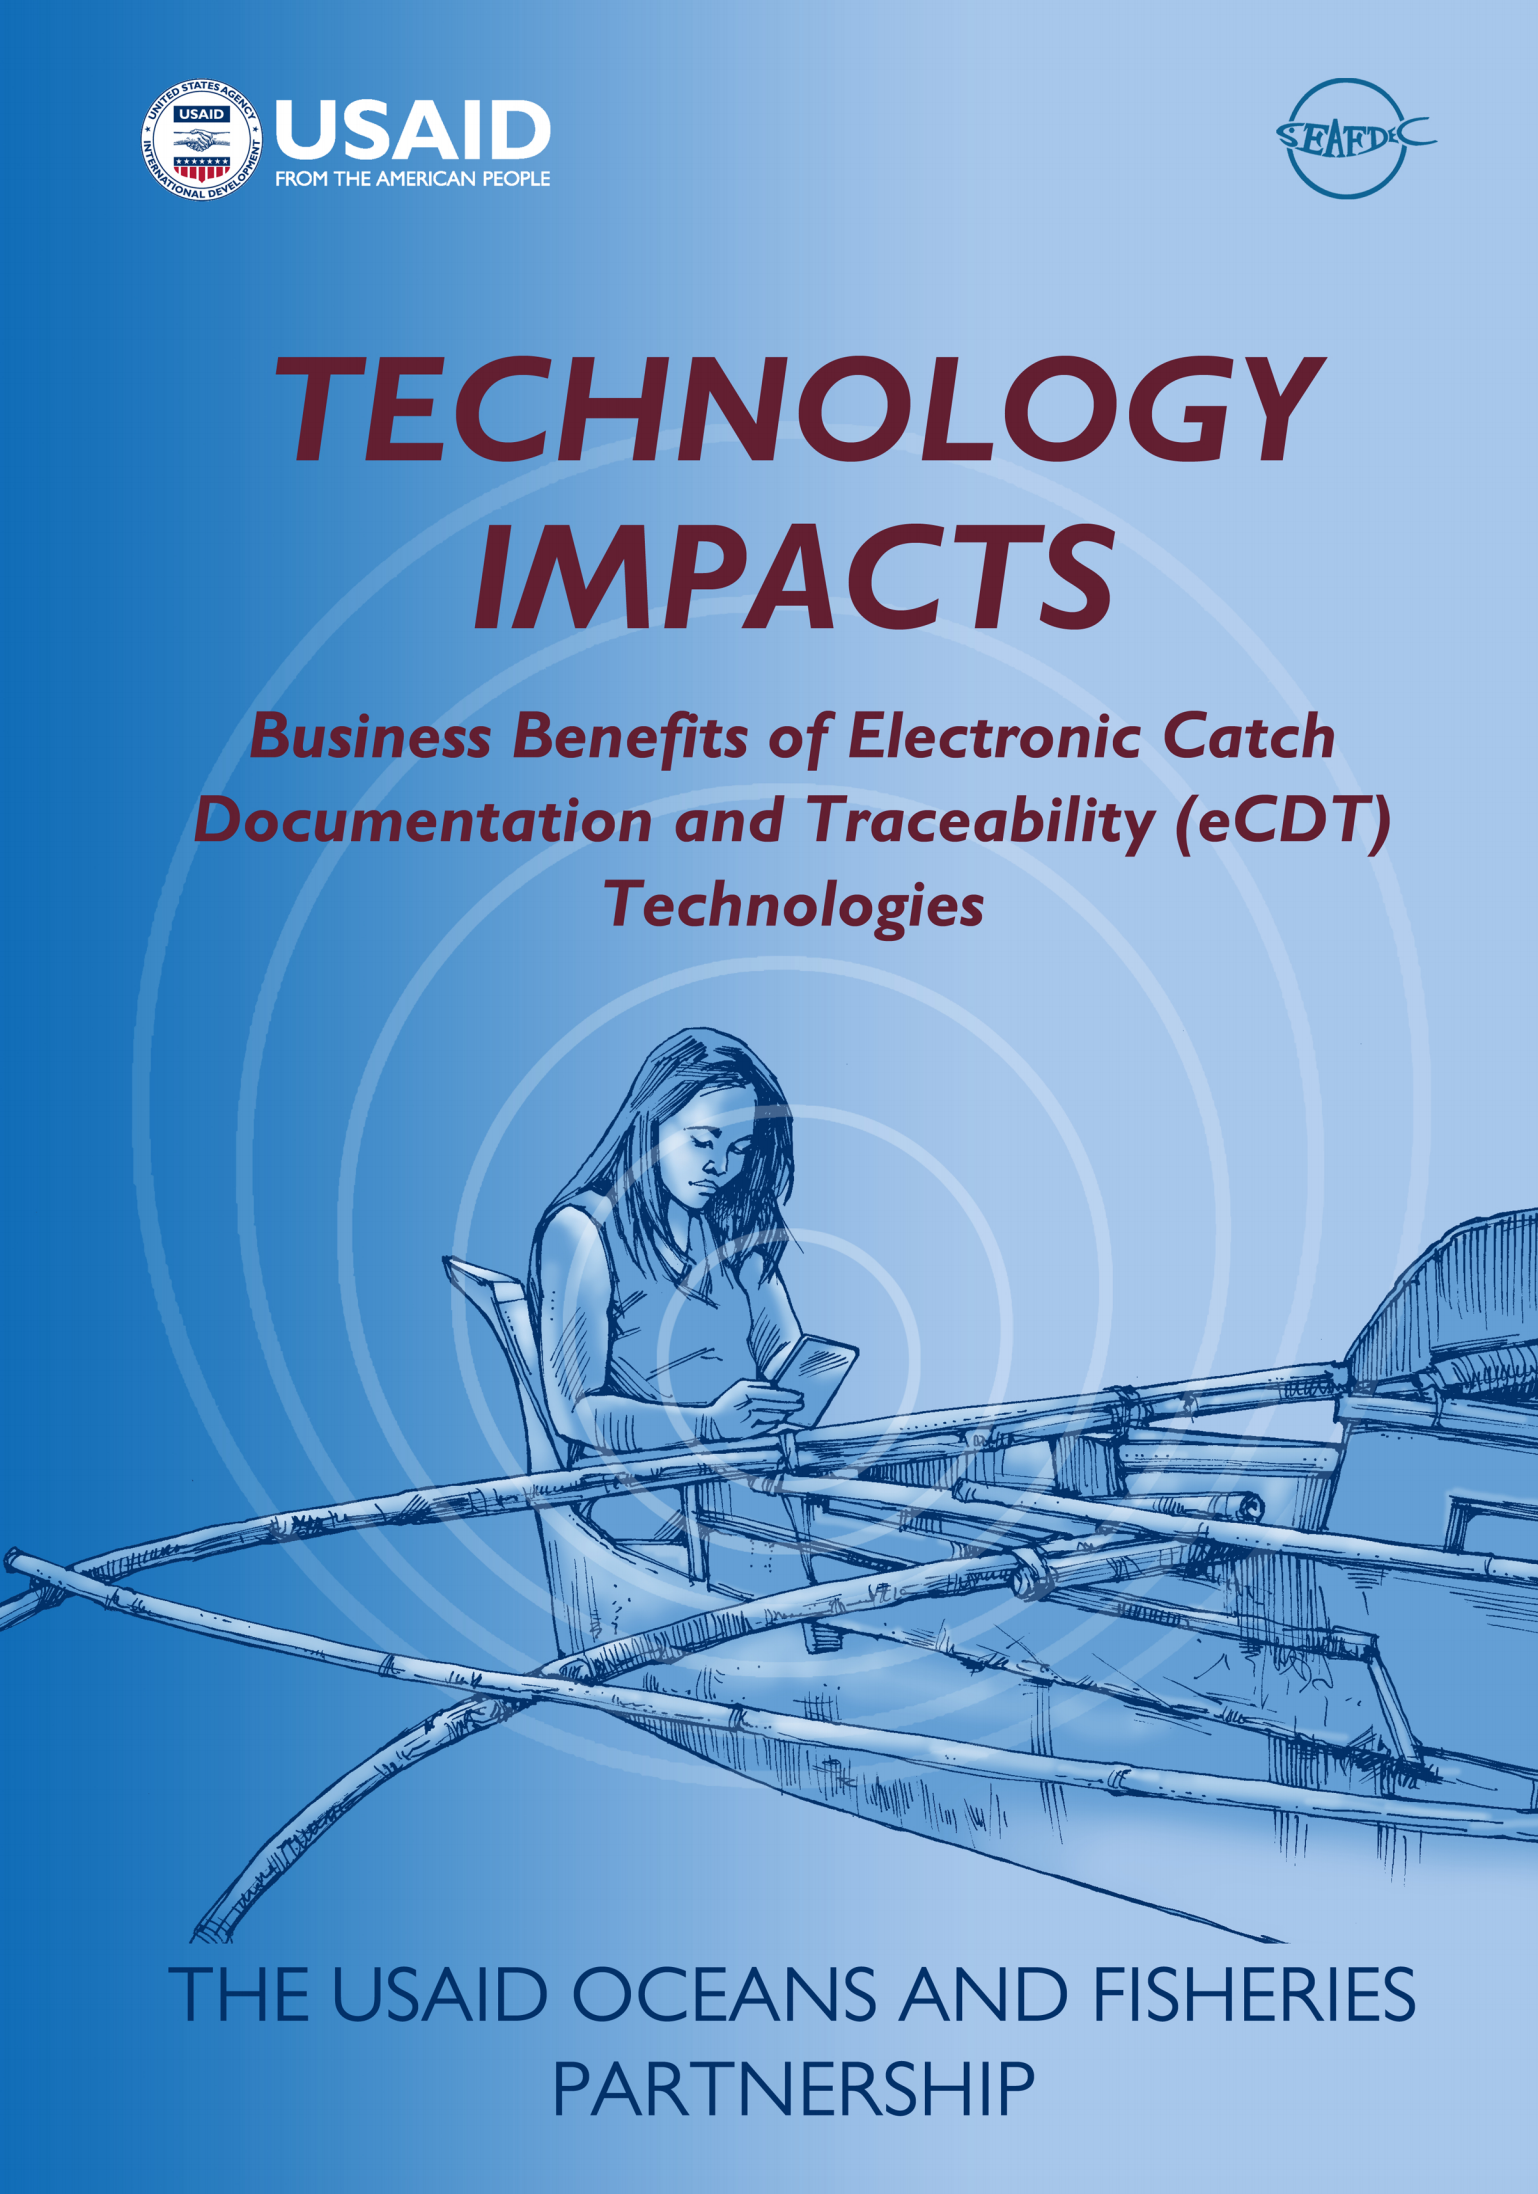 Business Benefits of Electronic Catch Documentation and Traceability Technologies